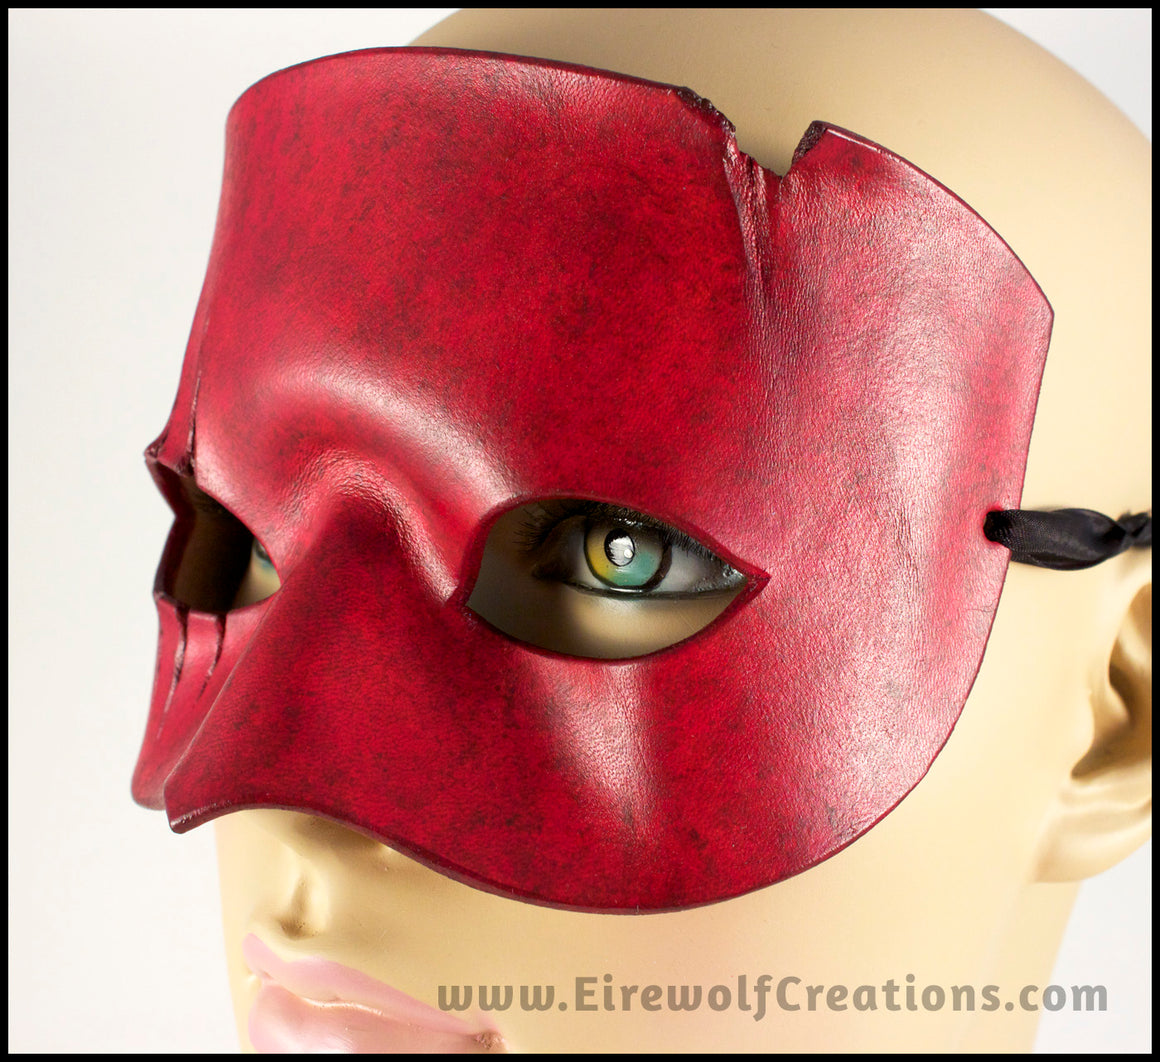 A handmade leather mask with 3 scars slashing across one eye, dyed and painted a mottled red reminiscent of blood. By Erin Metcalf of Eirewolf Creations.